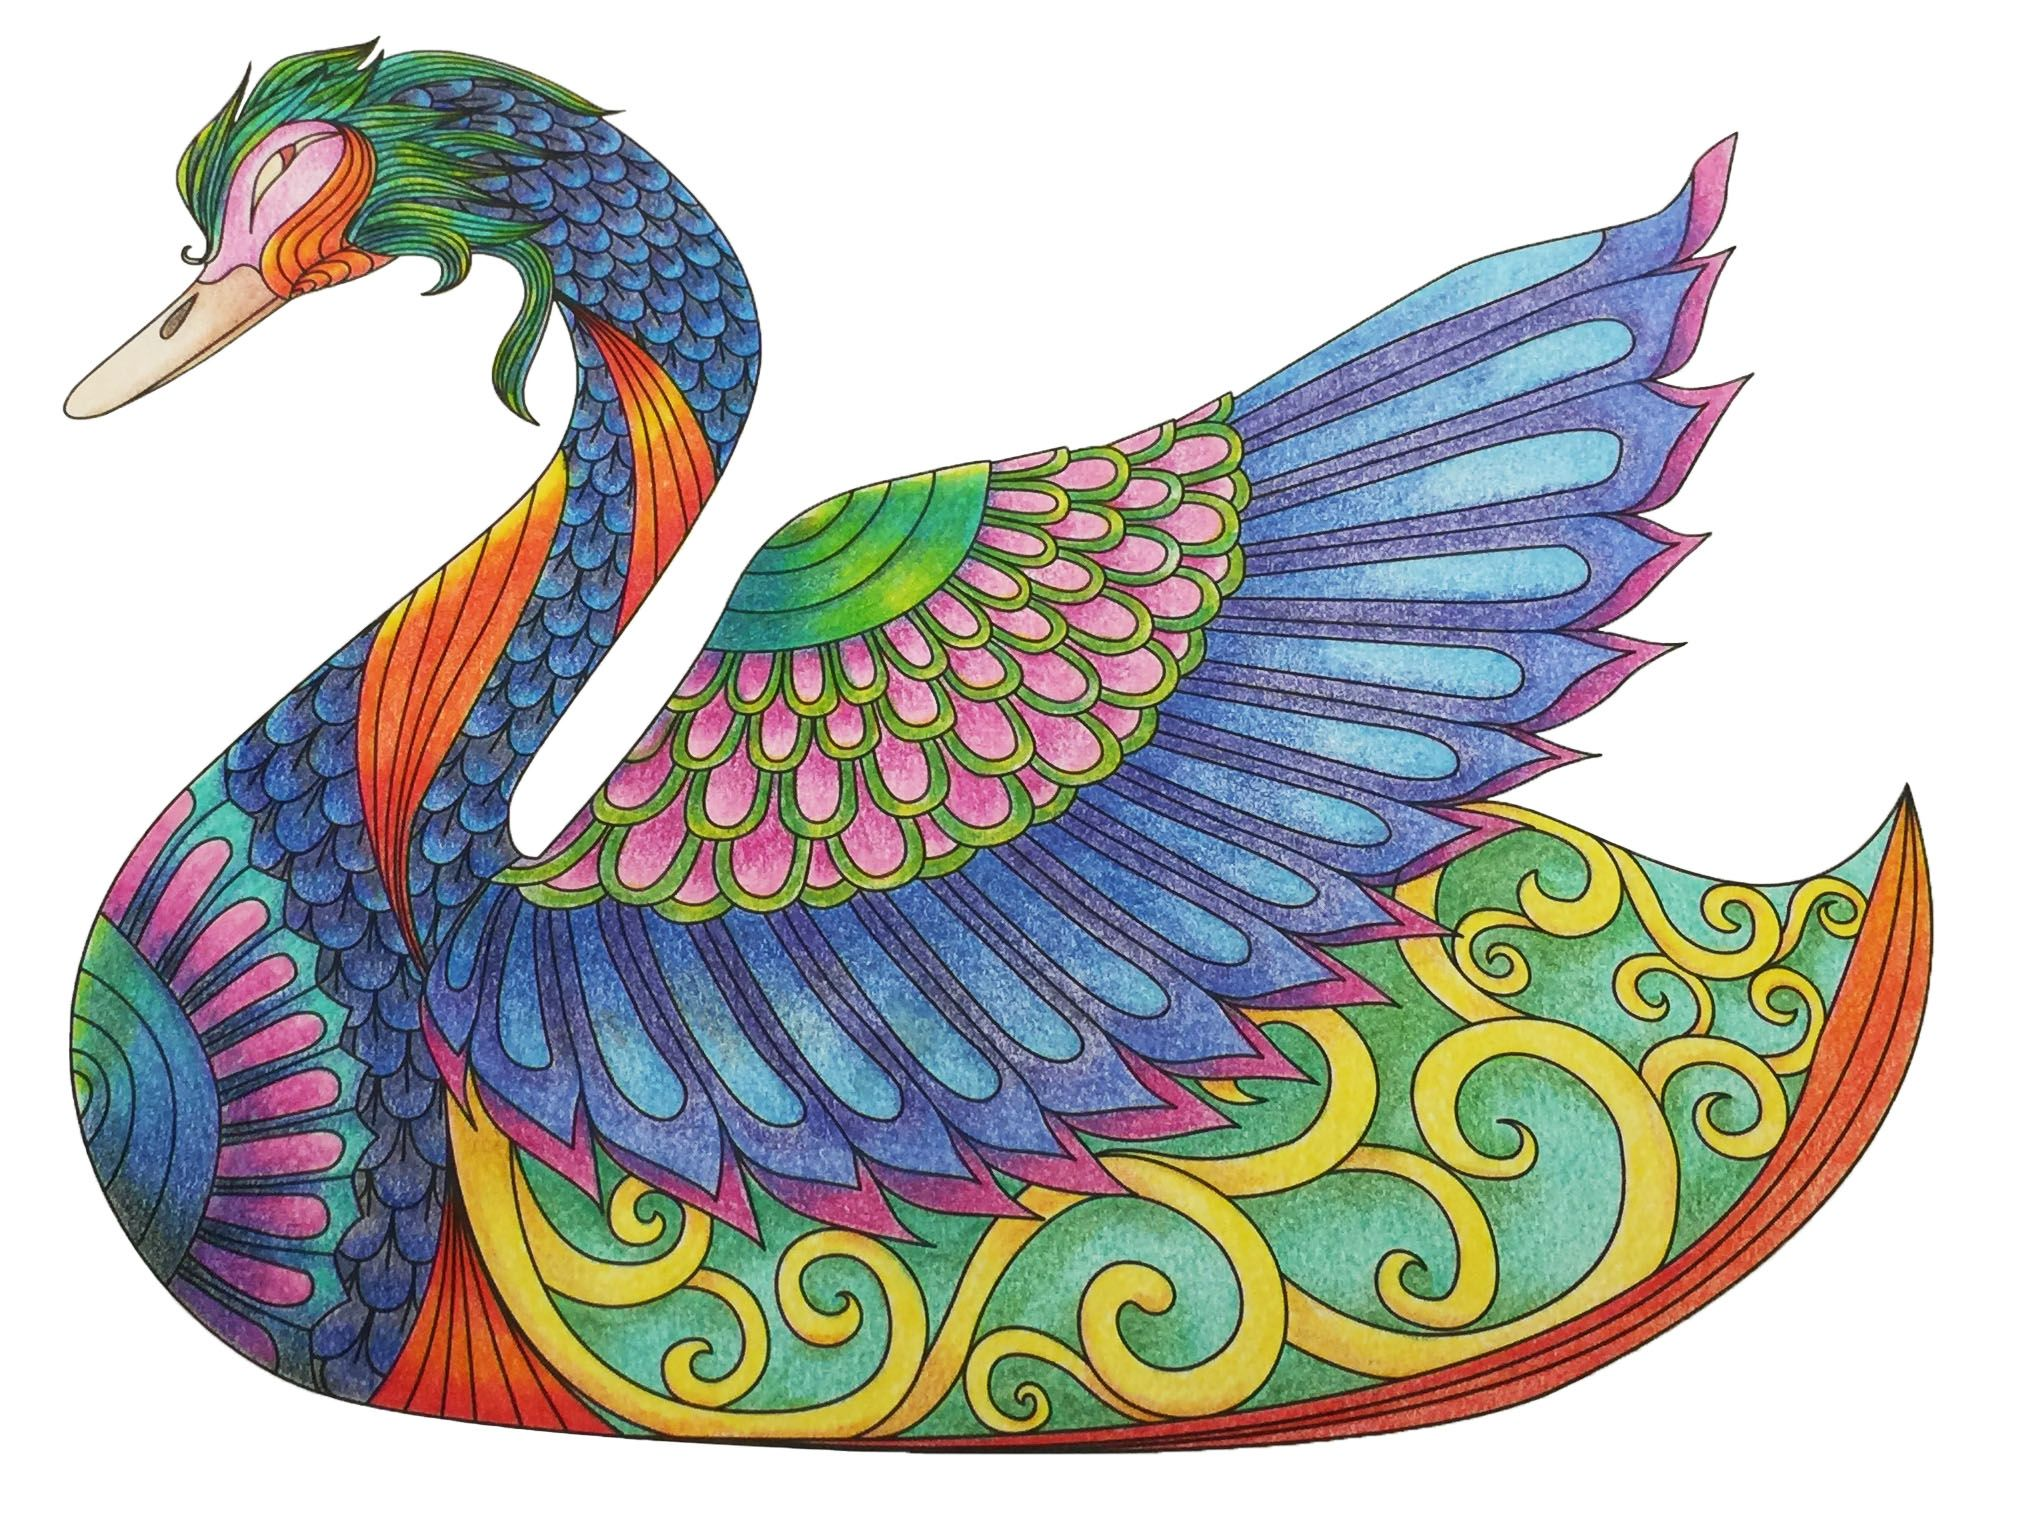 Color art living wonders - Swan From Leisure Arts 6807 Art Of Coloring Animals Colored Pencils Used